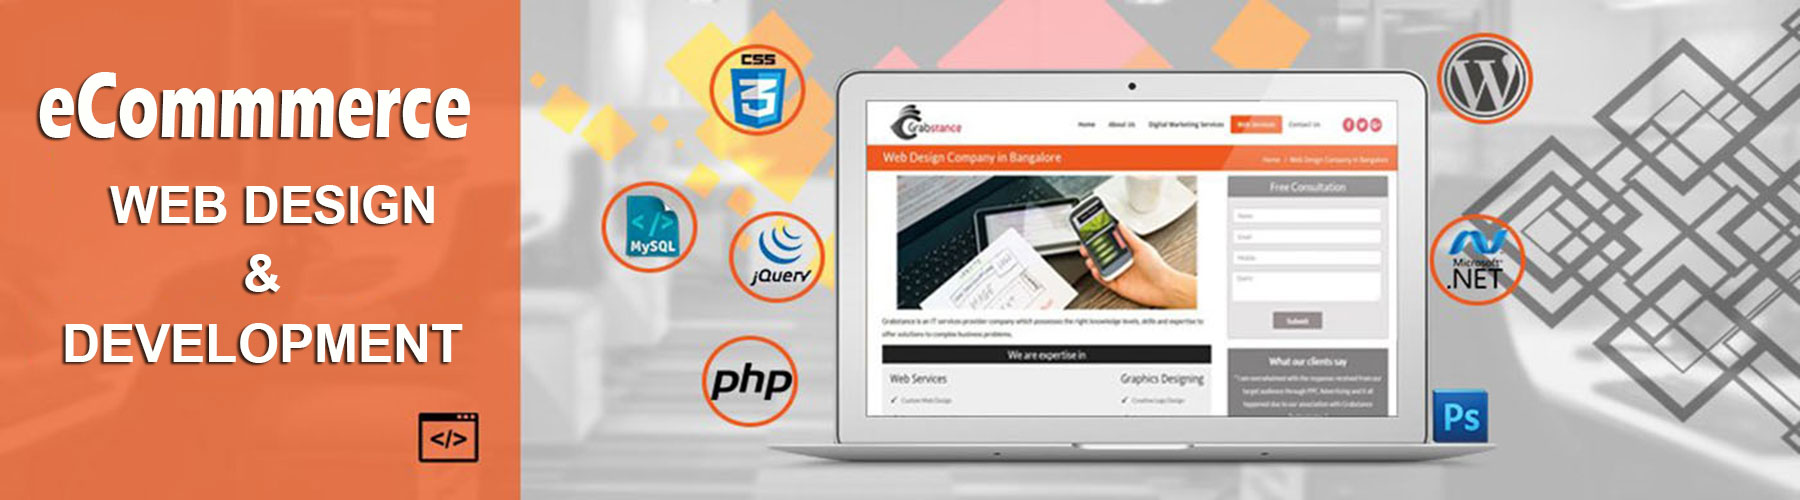 eCommerce website design service banner